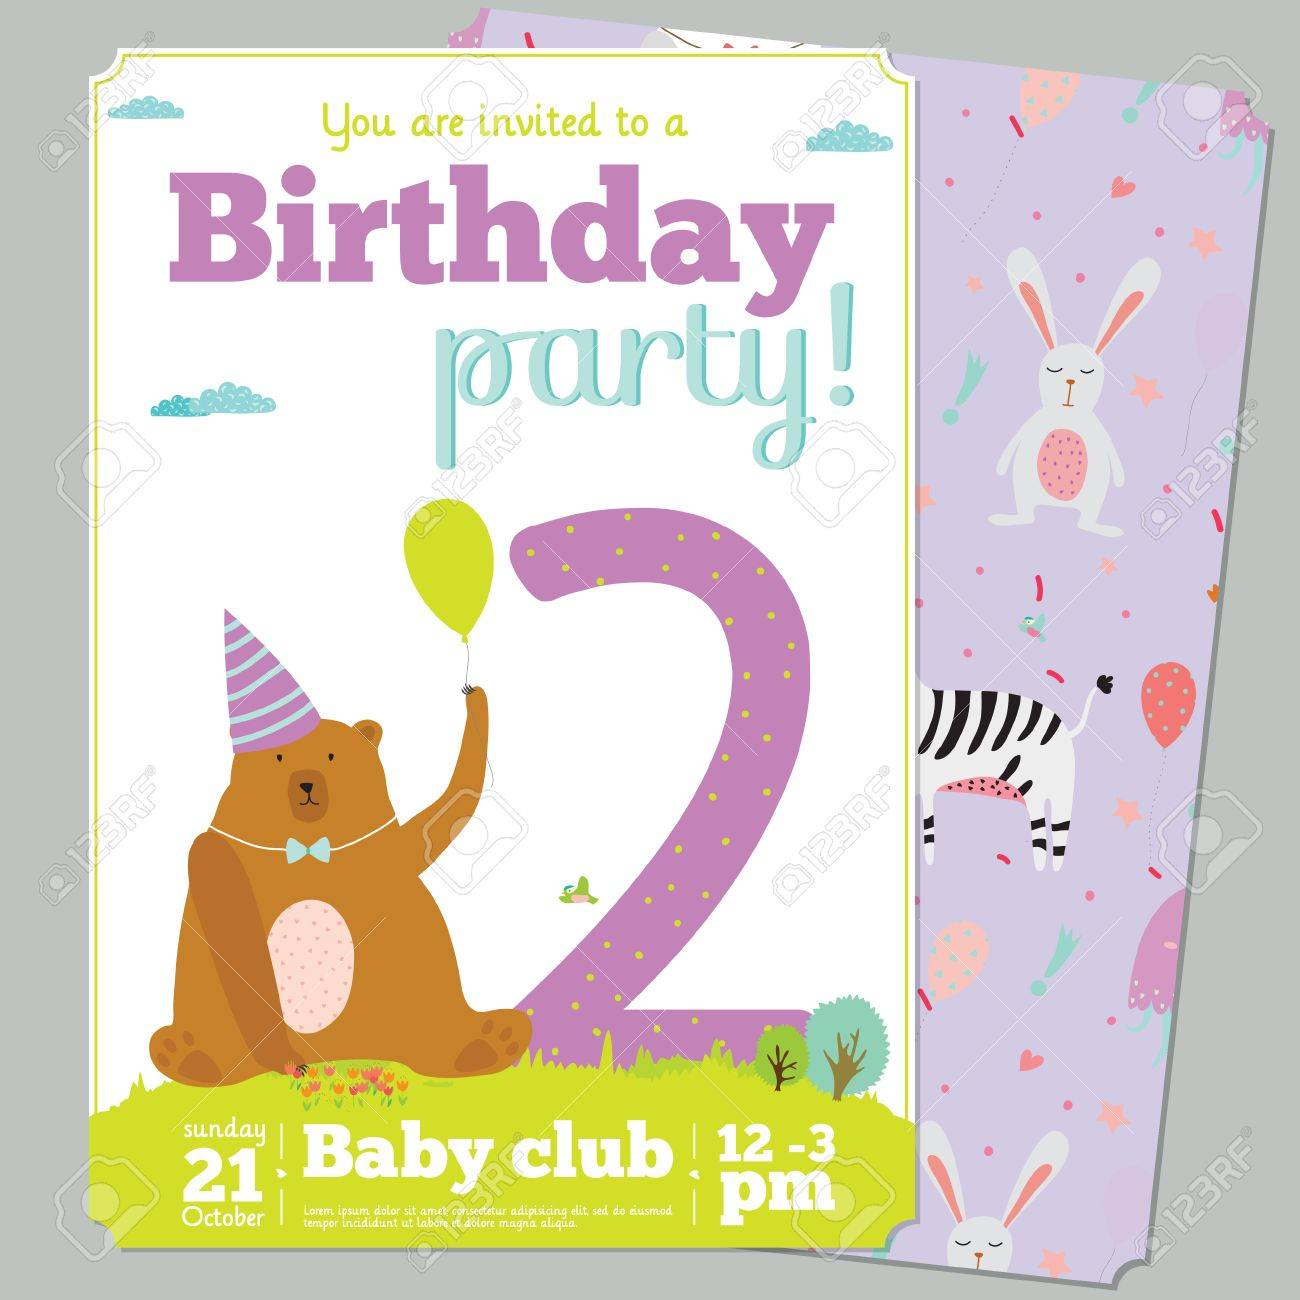 Invitation Cards For Kids Birthday Party Images - Party ...